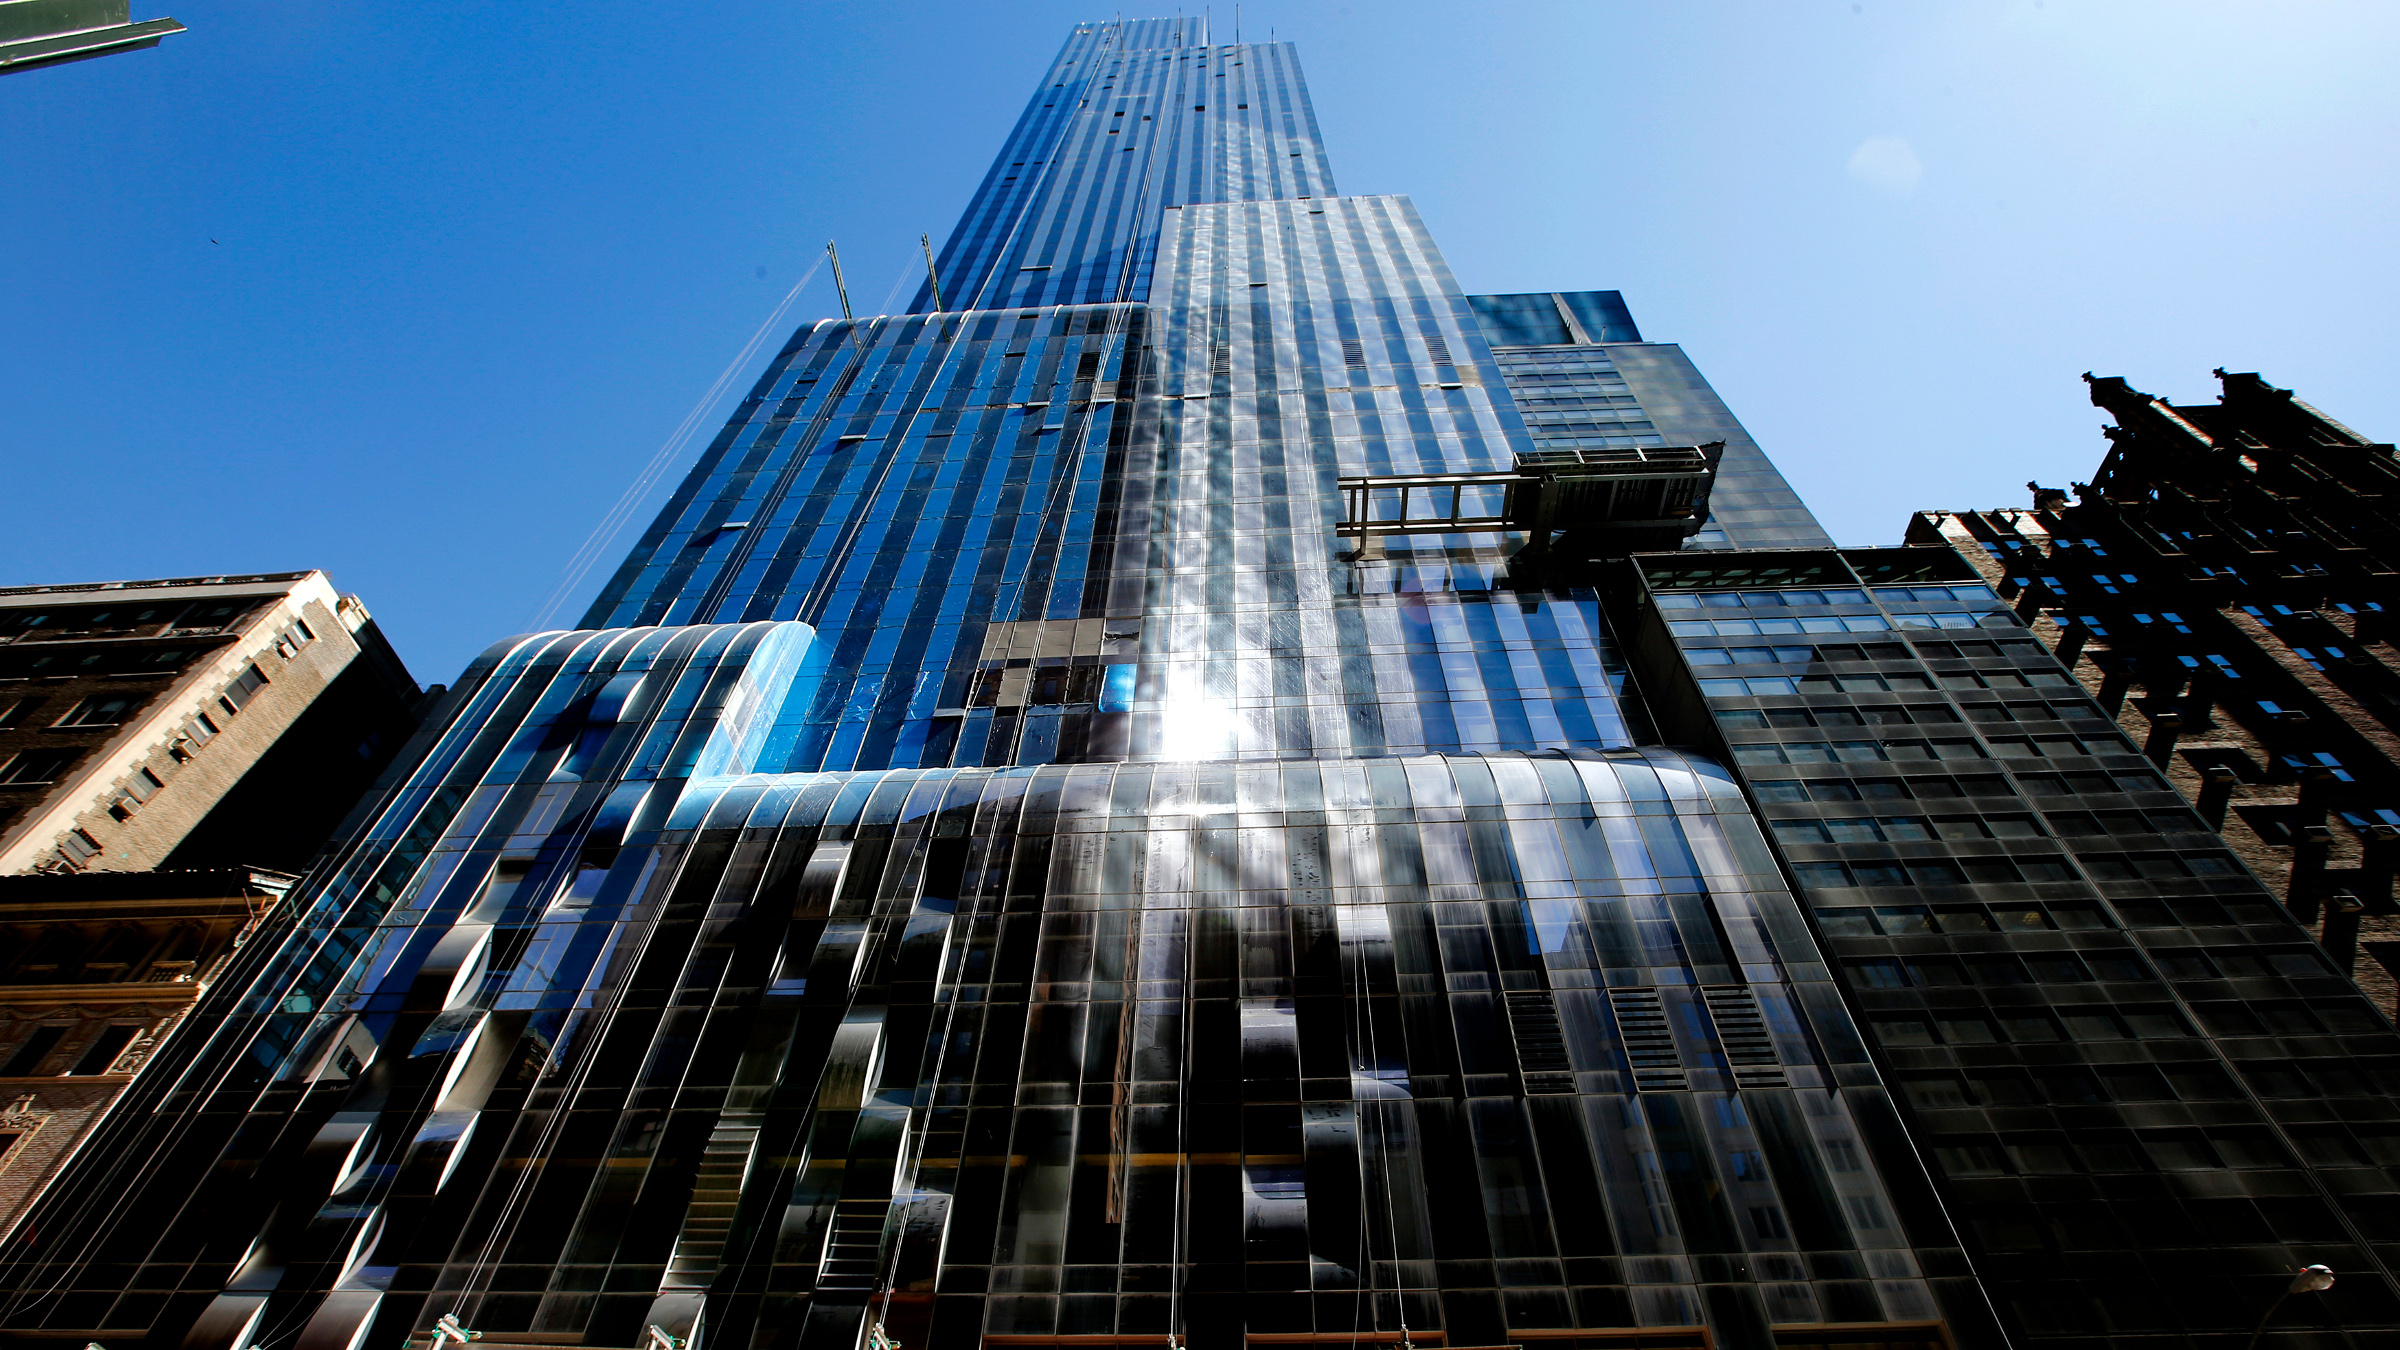 One57, a new luxury skyscraper apartment building designed by French architect Christian de Portzamparc which is under construction on New York City's West 57th street, is pictured April 24, 2014. Wealthy Chinese are pouring money into real estate in New York and some other major cities around the world, including London and Sydney, as they seek safe havens for their cash and also establish a base for their children to get an education in the West. The current in-vogue building among the Chinese is Central Park?s One57, a new skyscraper designed by Pritzker Prize-winning French architect de Portzamparc, where they can spend $18.85 million for a three-bedroom or $55 million for an apartment taking up the entire 81st floor. The building comes with all of the amenities of a five-star hotel. Picture taken April 24, 2014.